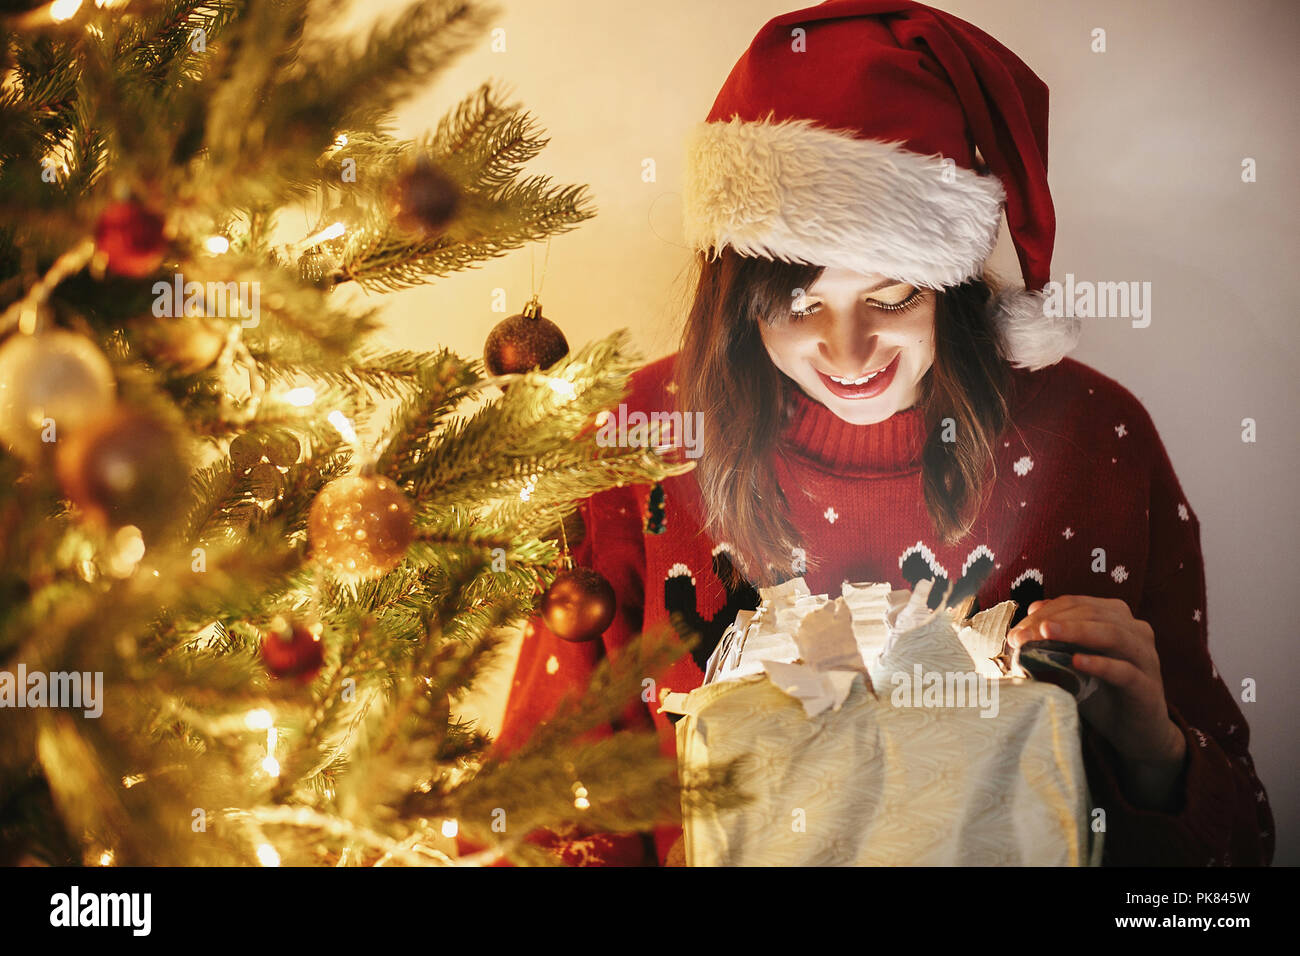 f293d613ed01d happy girl in santa hat opening magic Christmas gift box at golden  beautiful christmas tree with lights and presents in festive room. winter  atmospher